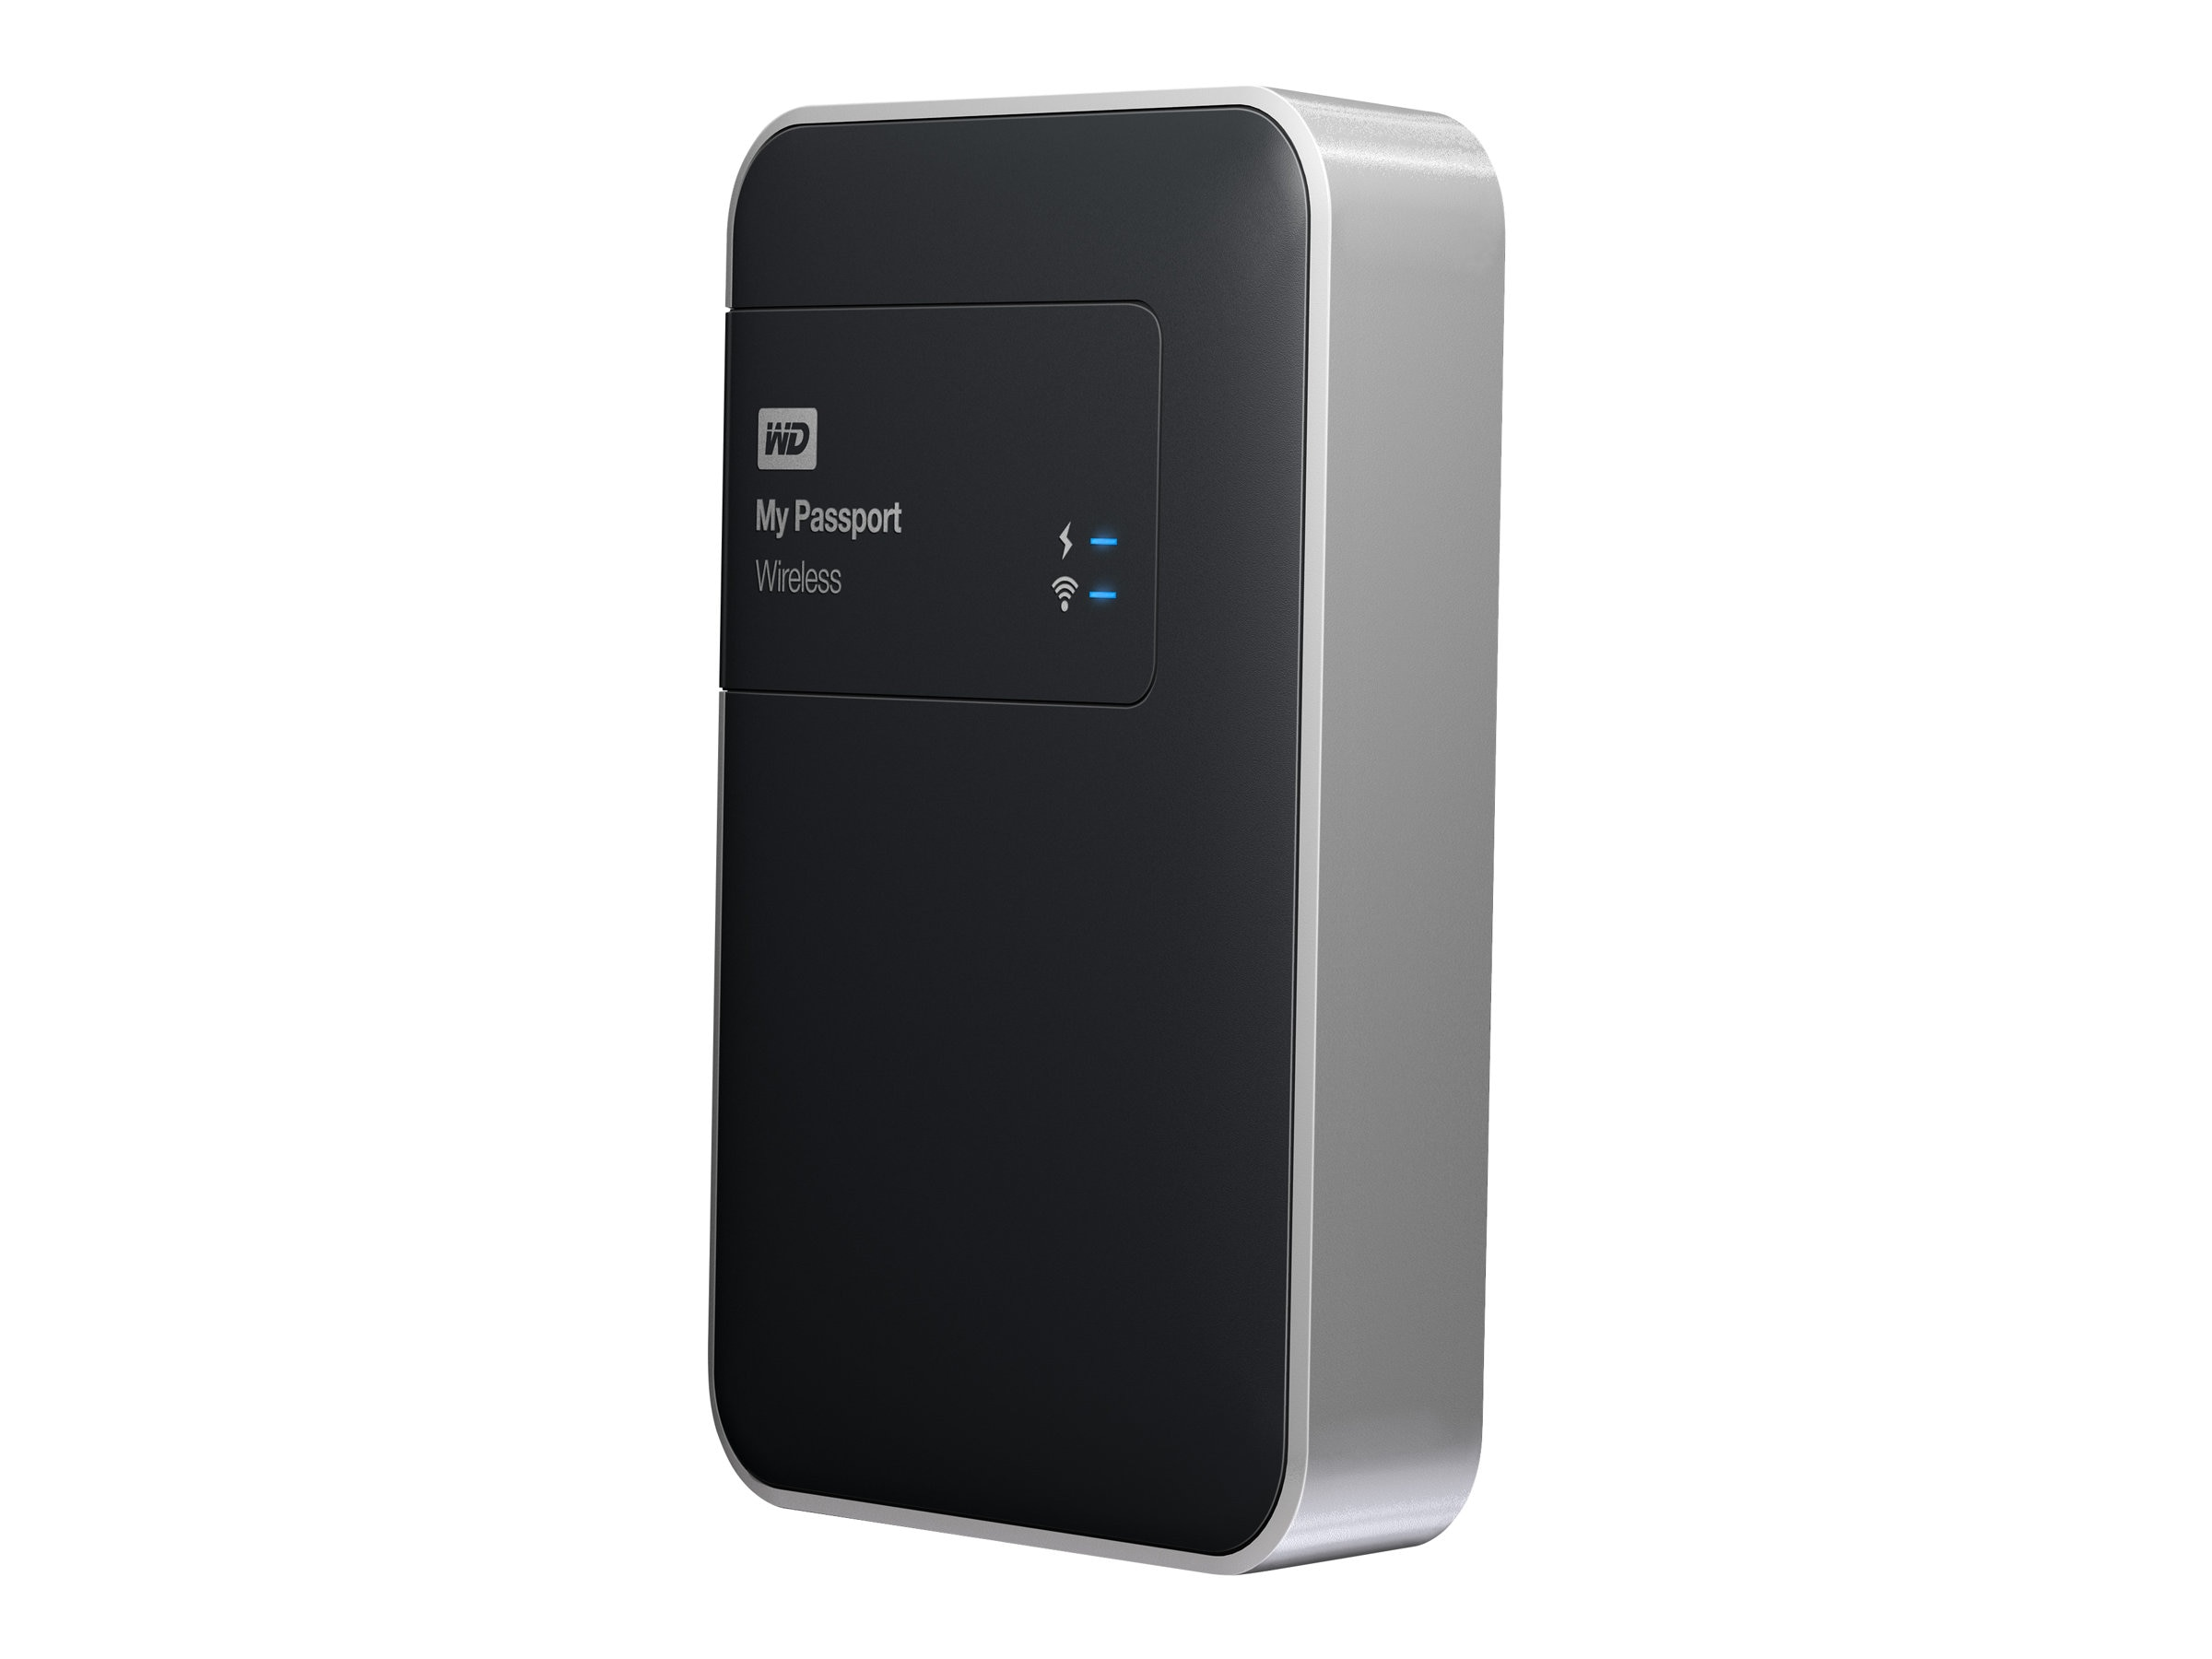 WD 2TB My Passport Wireless Storage - Black, WDBDAF0020BBK-NESN, 17741411, Network Attached Storage